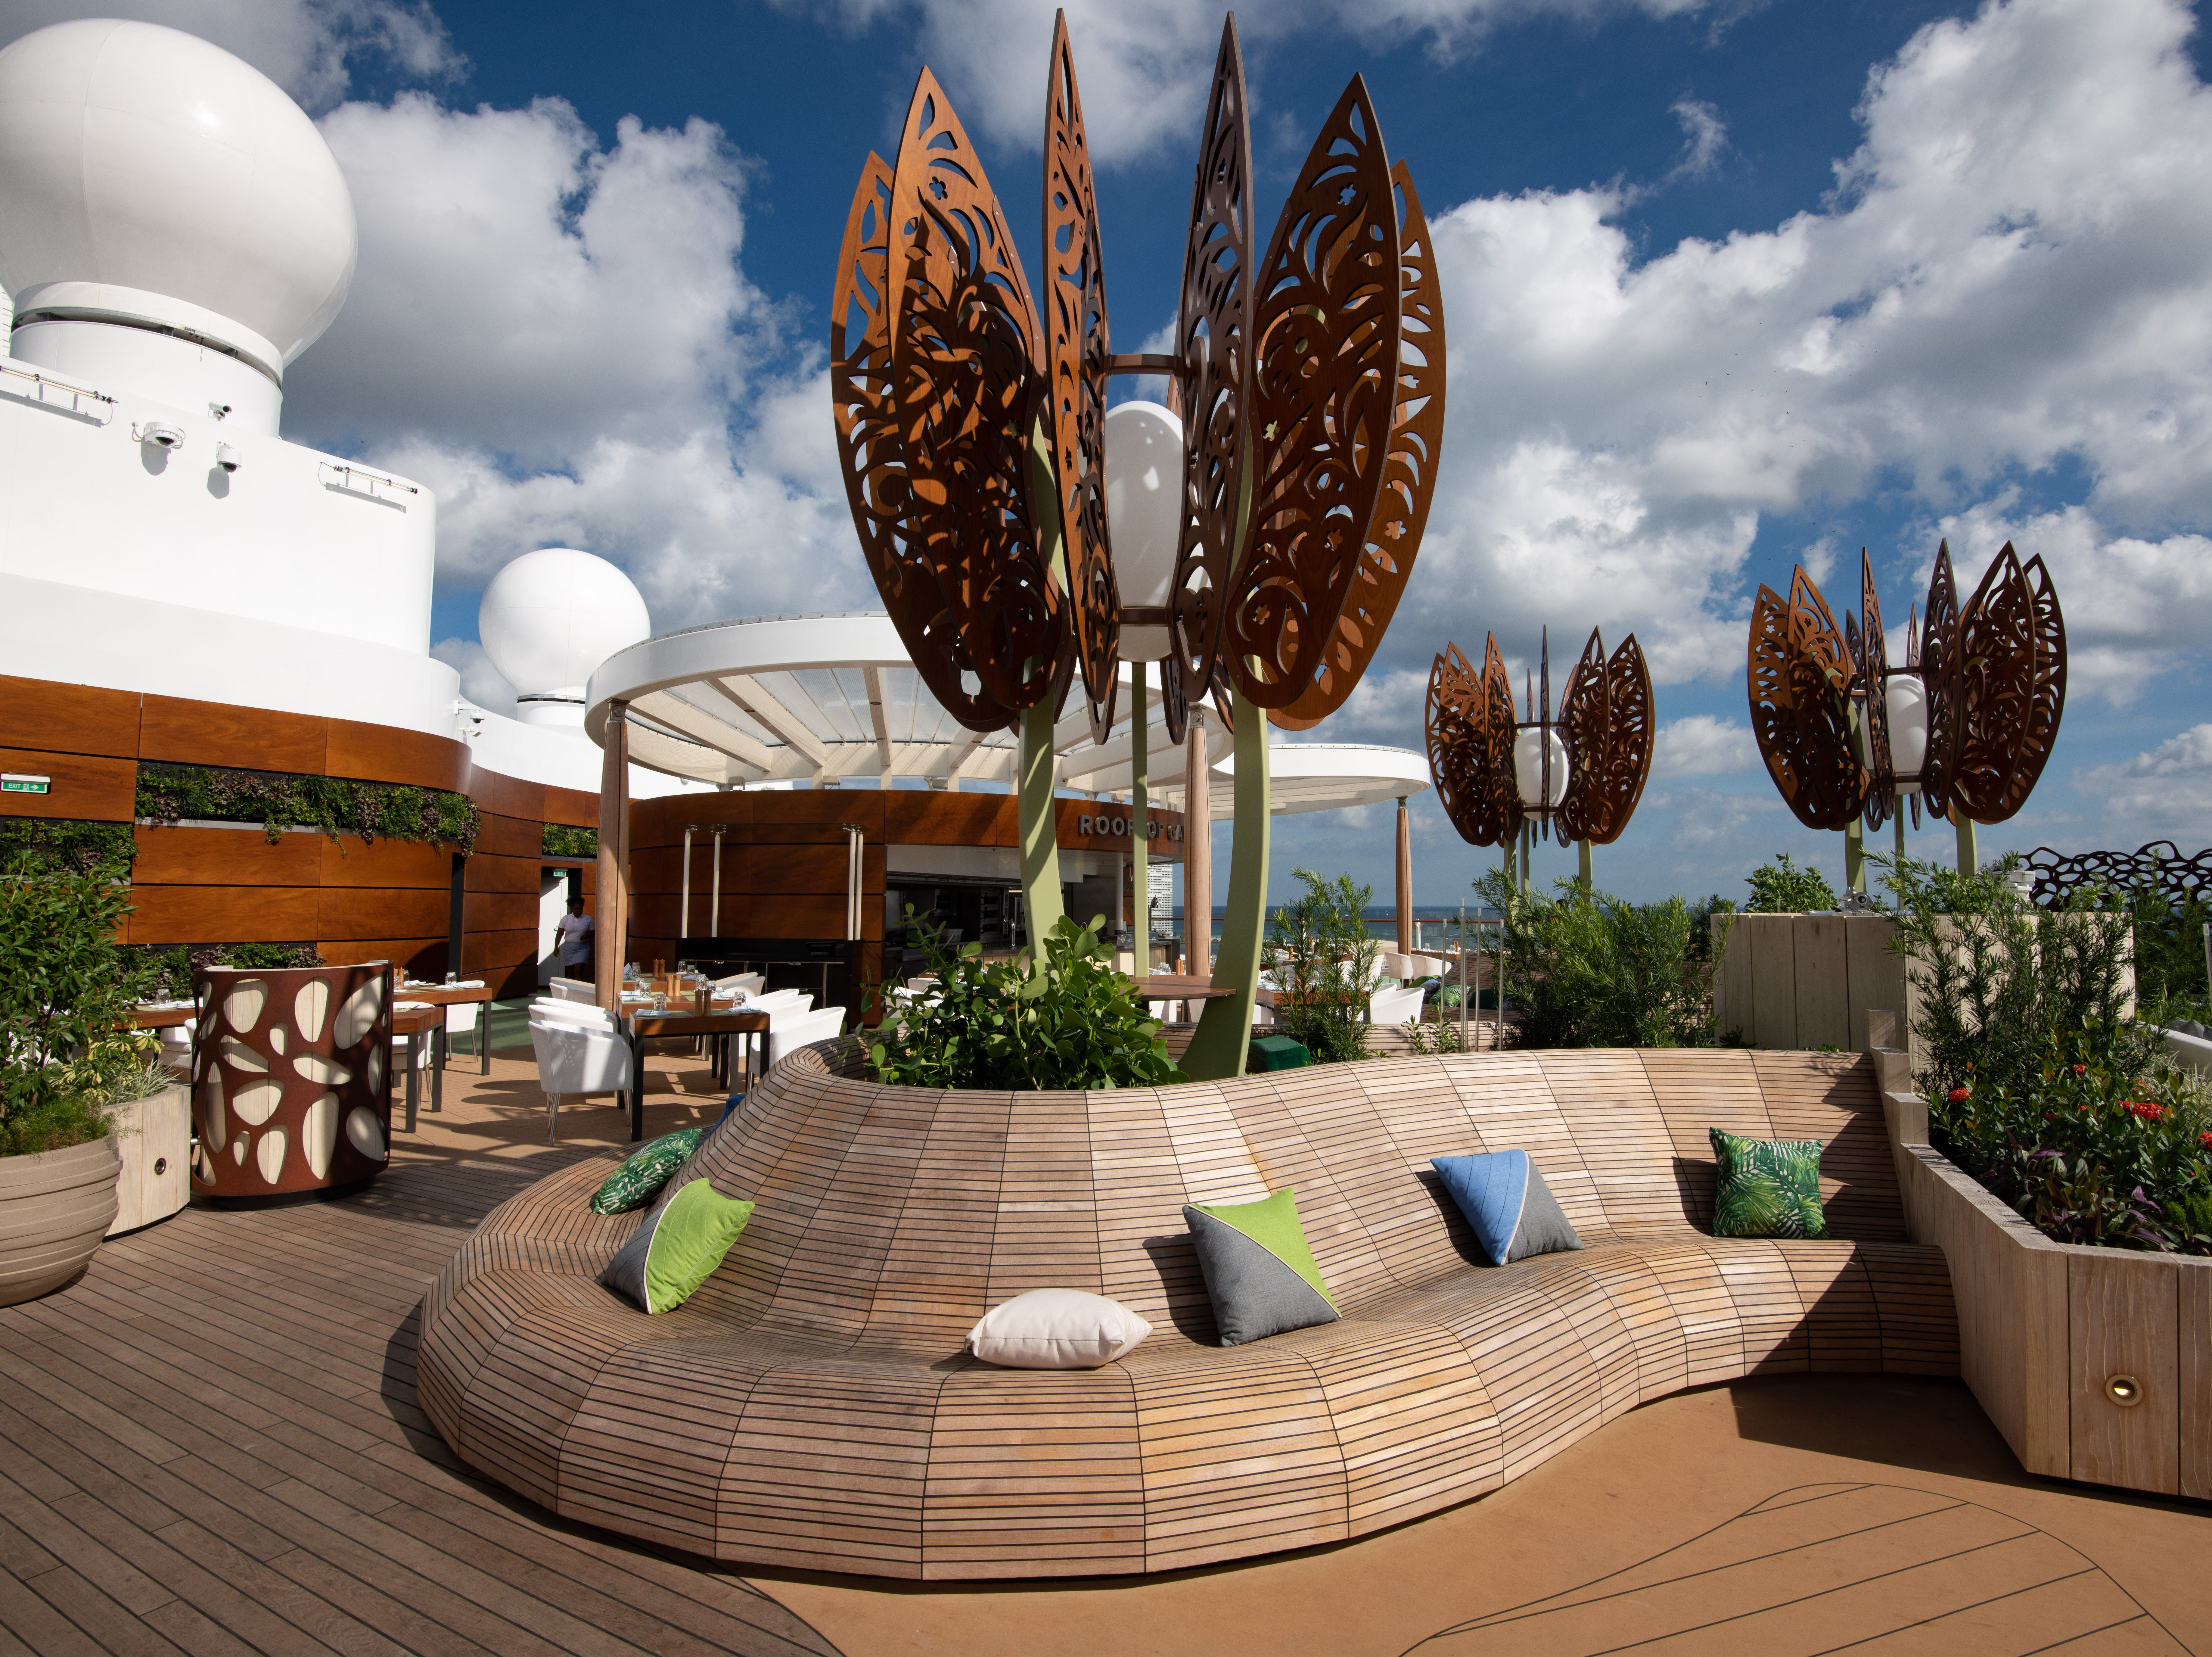 The Rooftop Garden offers park-like seating areas as well as interactive